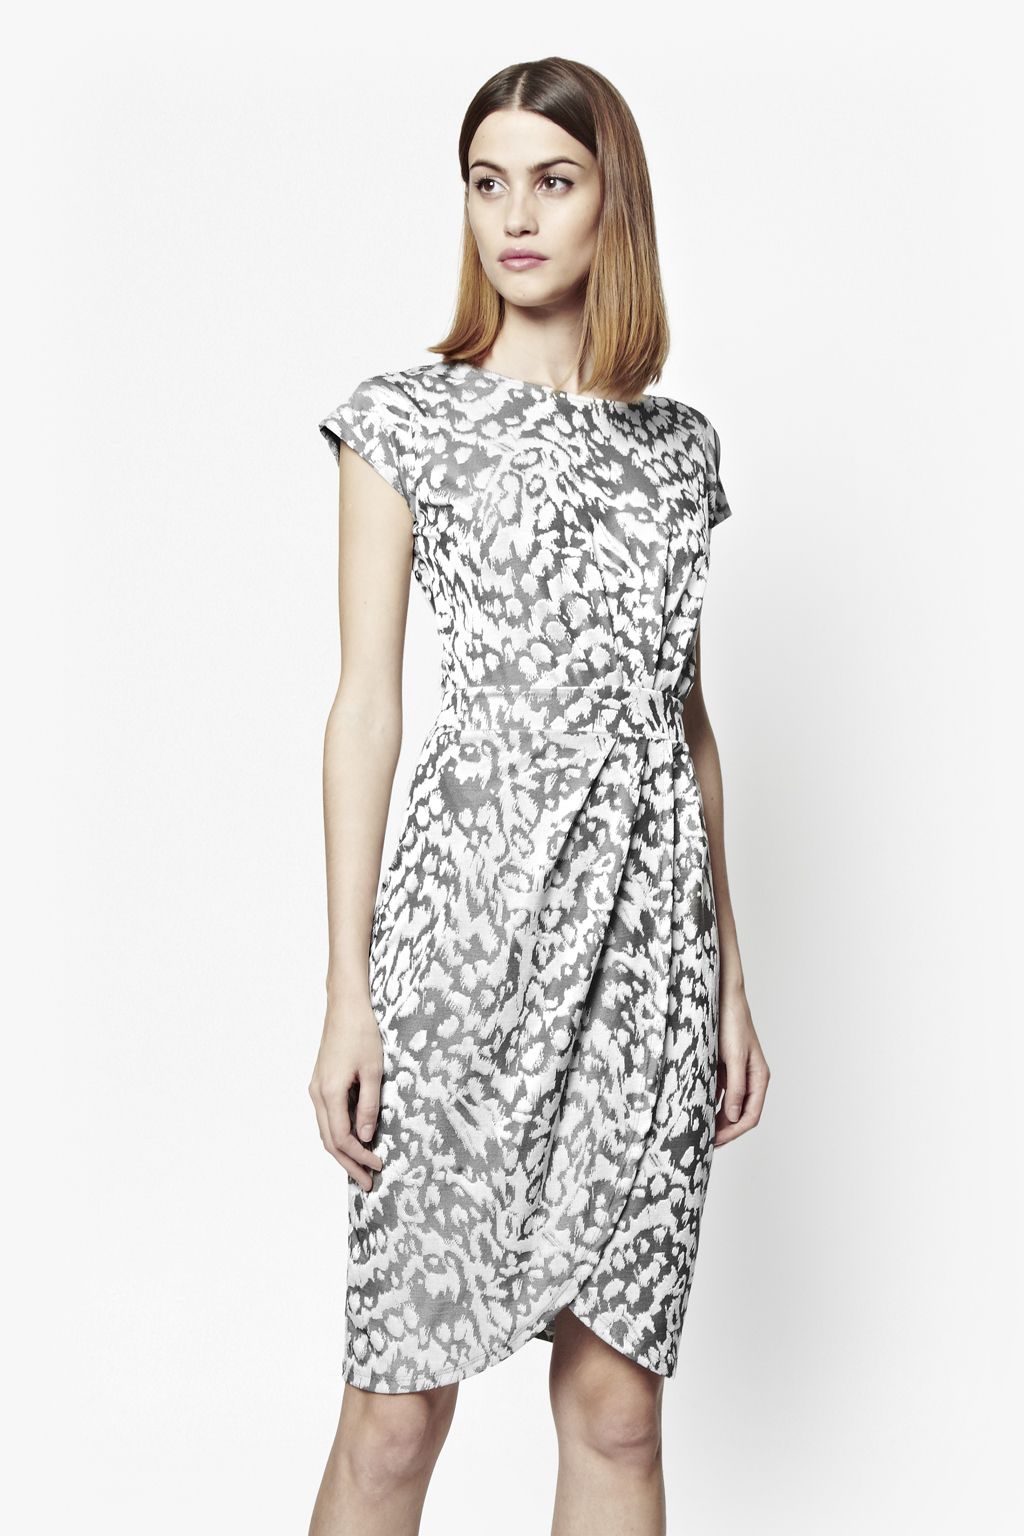 Cocktail dress gray in french